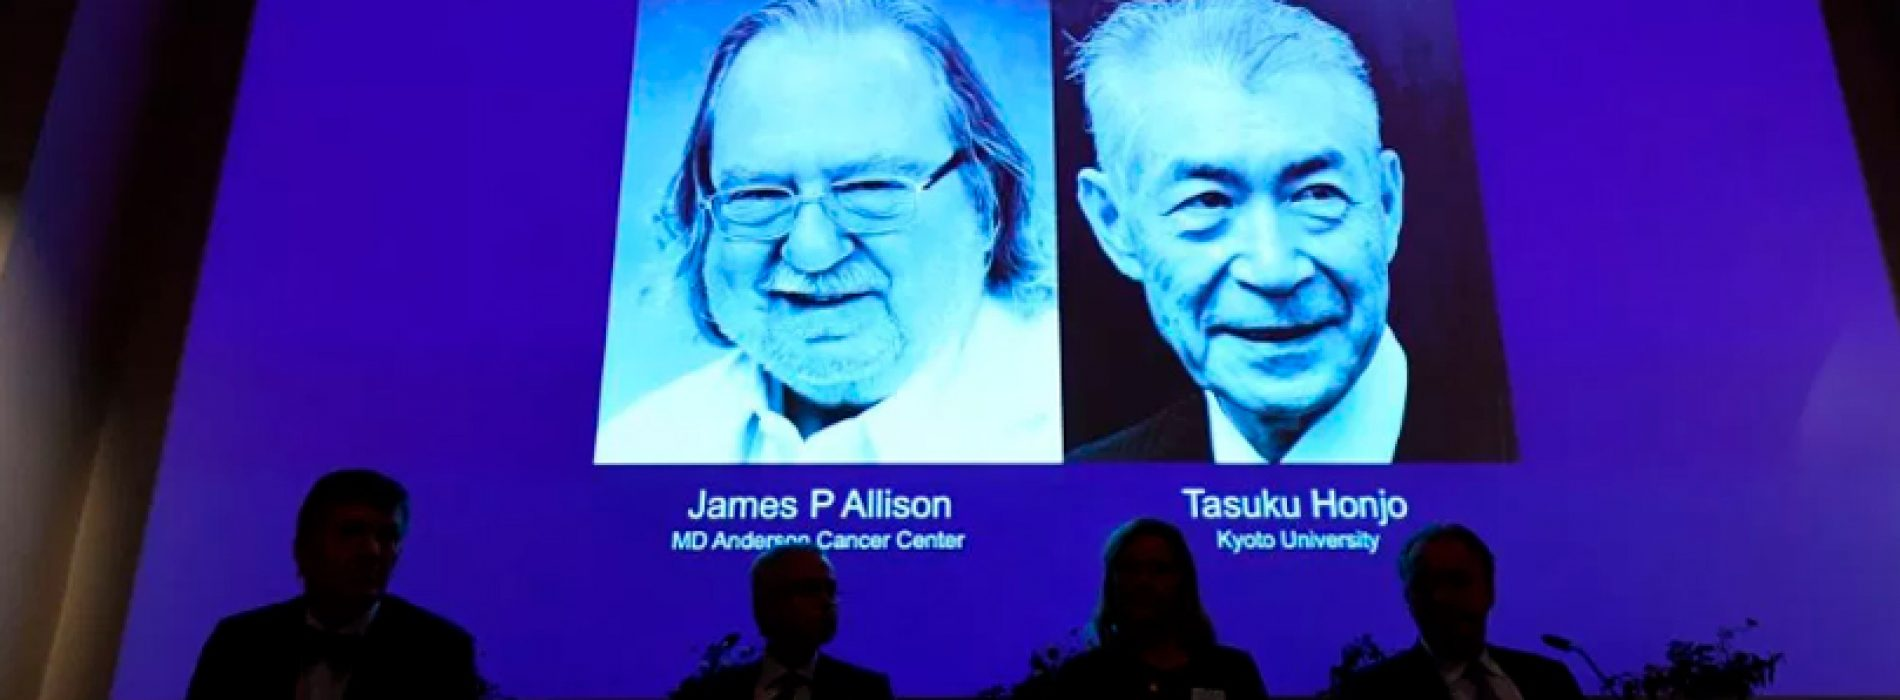 Nobel Prize in Medicine Awarded for Immune System Cancer Research